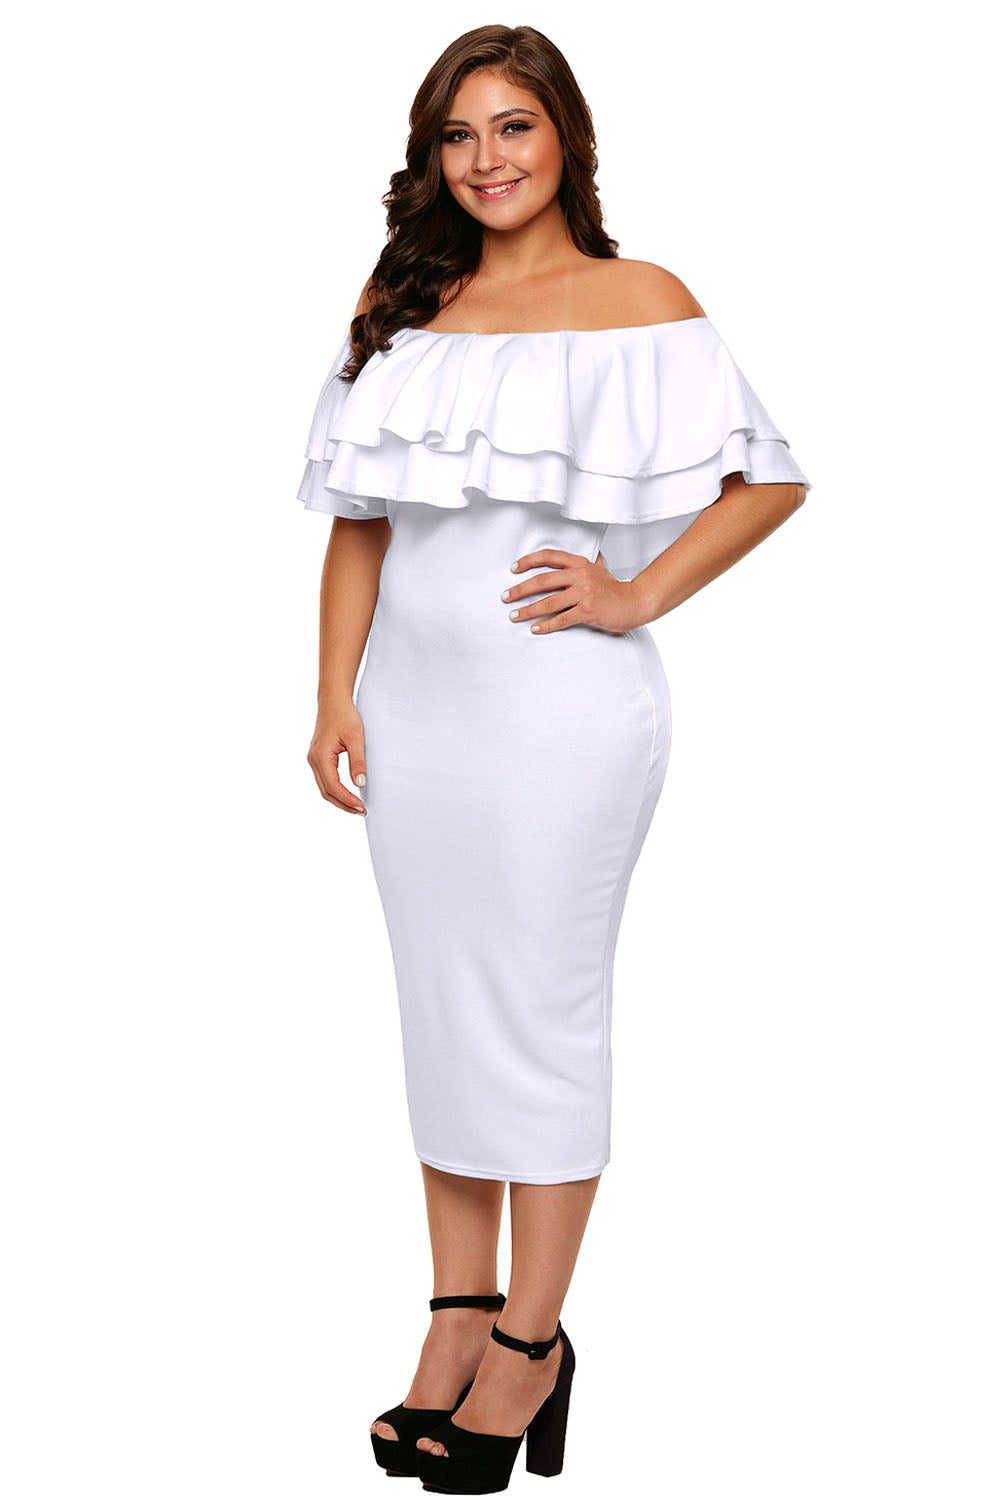 White Layered Ruffle Off Shoulder Curvaceous Dress Plus Size Dresses Discount Designer Fashion Clothes Shoes Bags Women Men Kids Children Black Owned Business